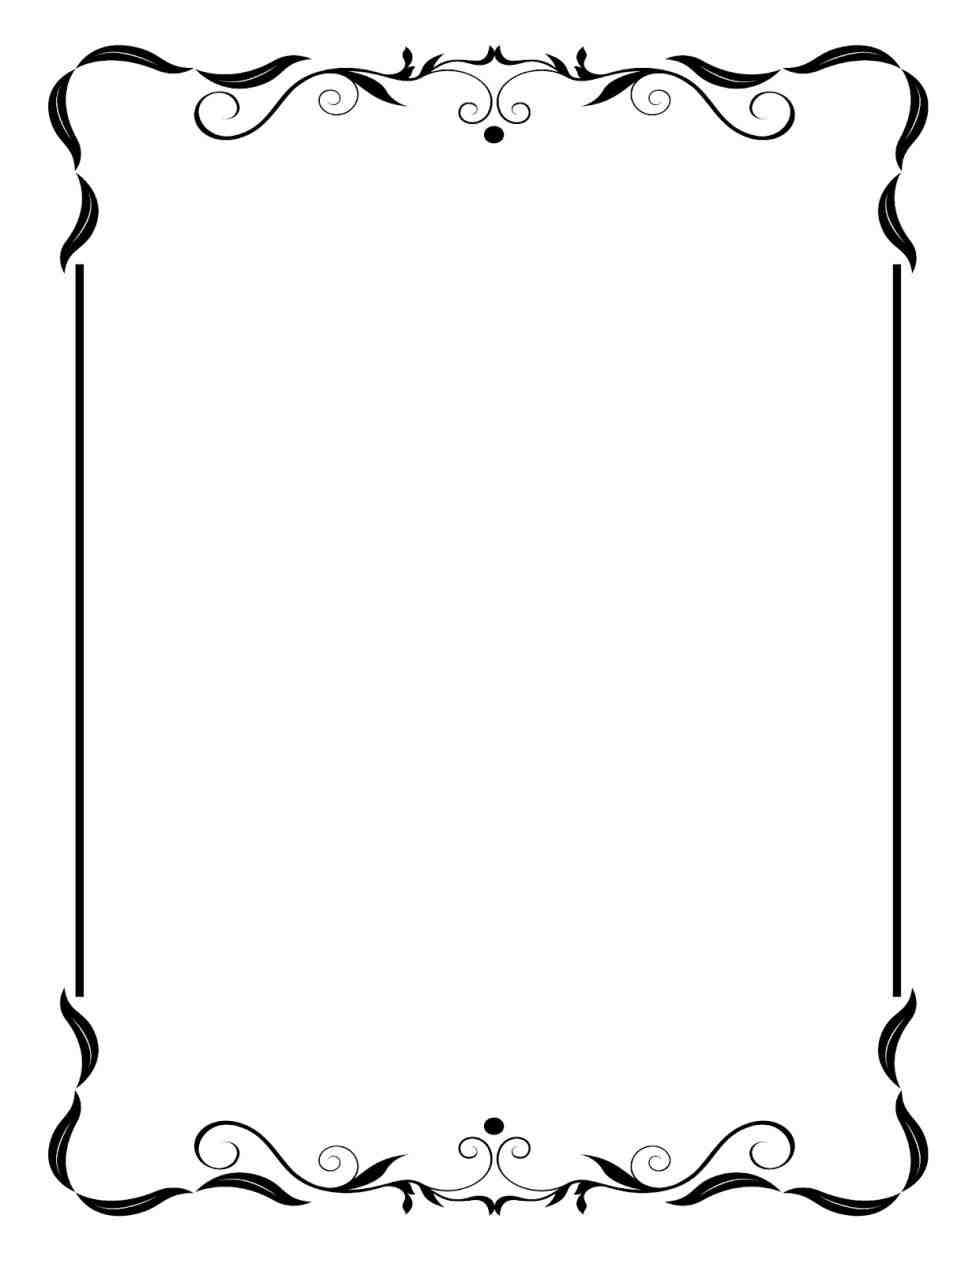 christmas border clip art black and white 20 free Cliparts   Download images on Clipground 2020